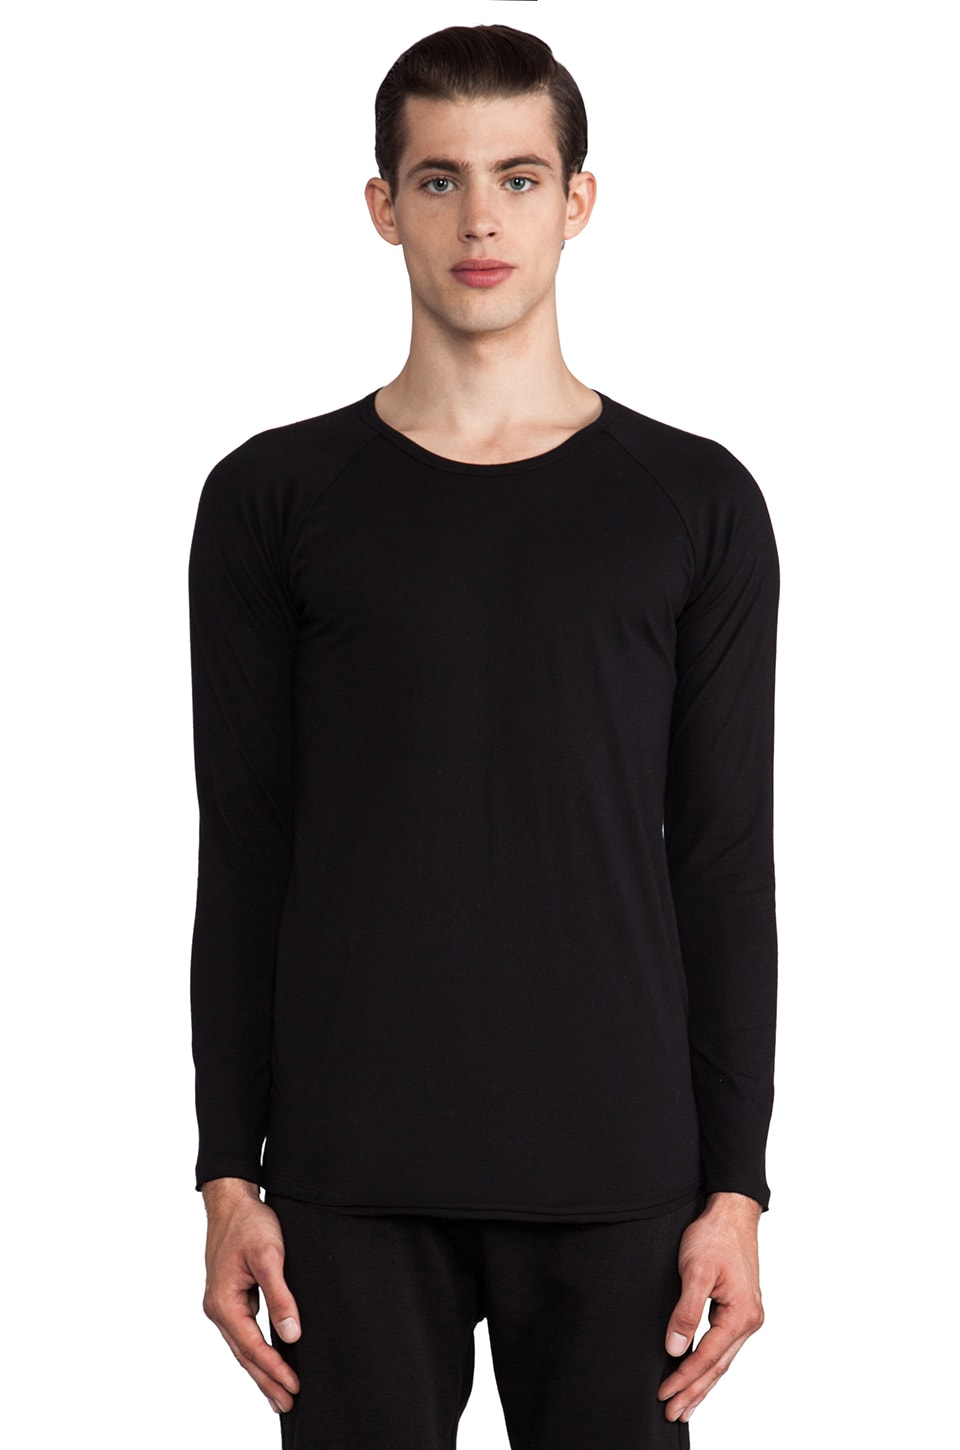 Post Bellum Raglan Tee in Noir